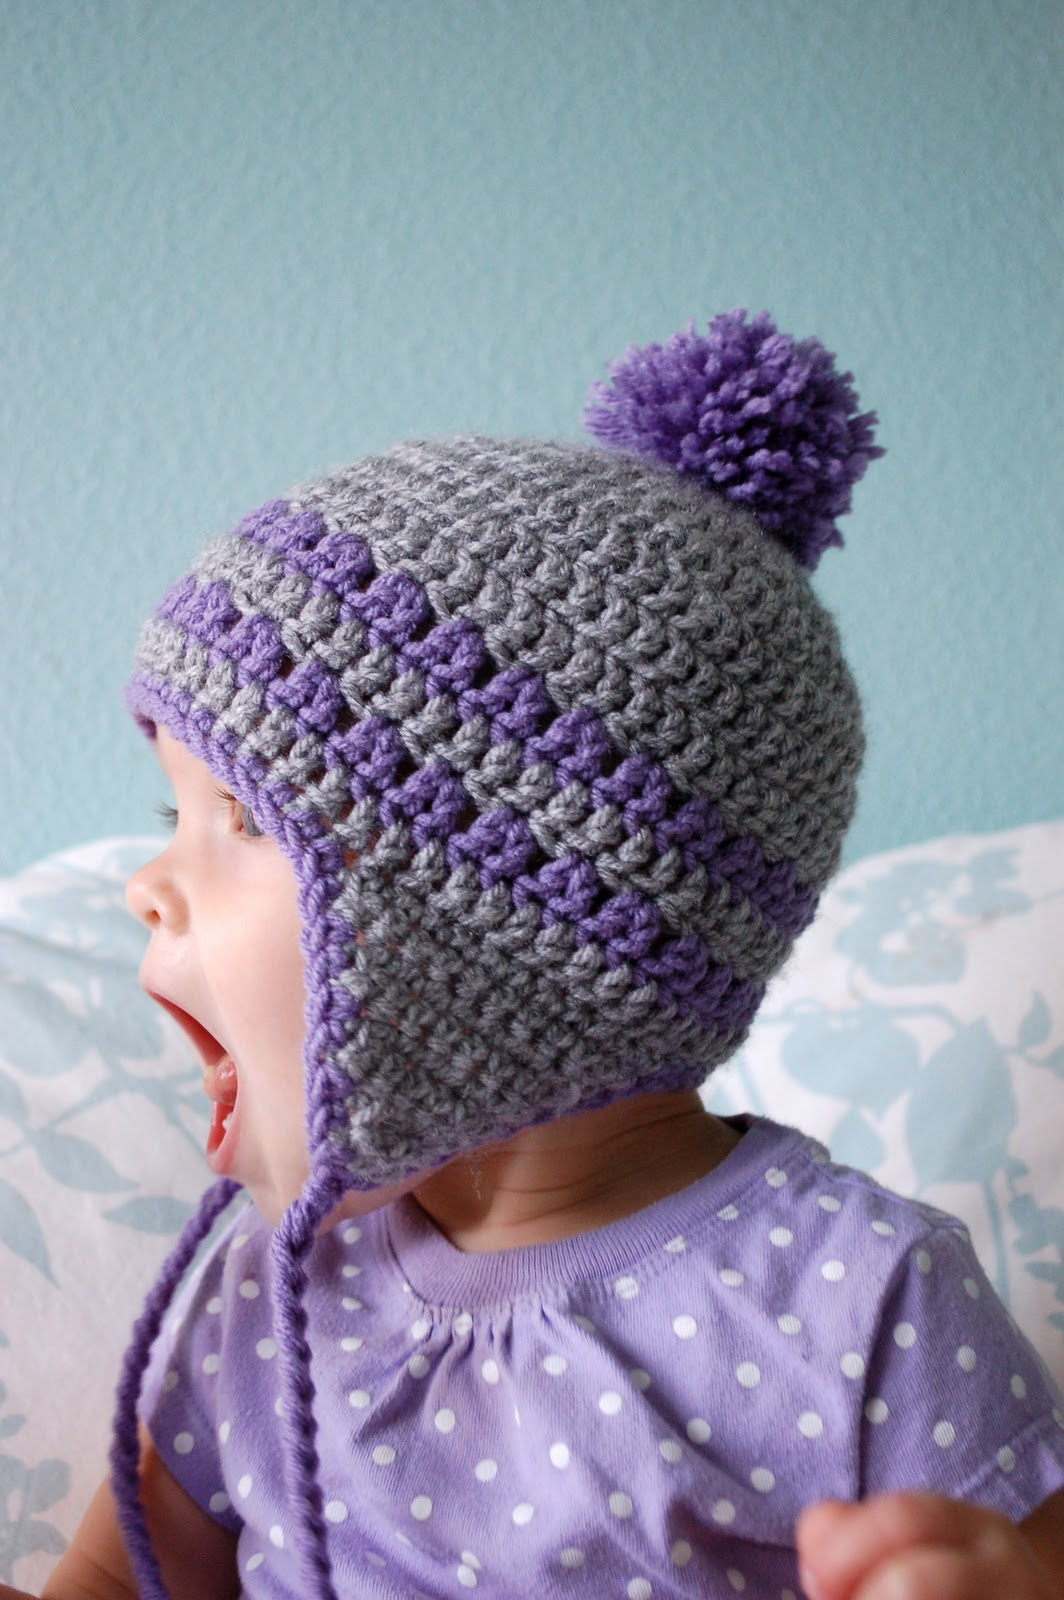 Knitting Pattern For Toddler Hat With Earflaps : Alli Crafts: Free Pattern: Earflap Hat - 9-12 Months